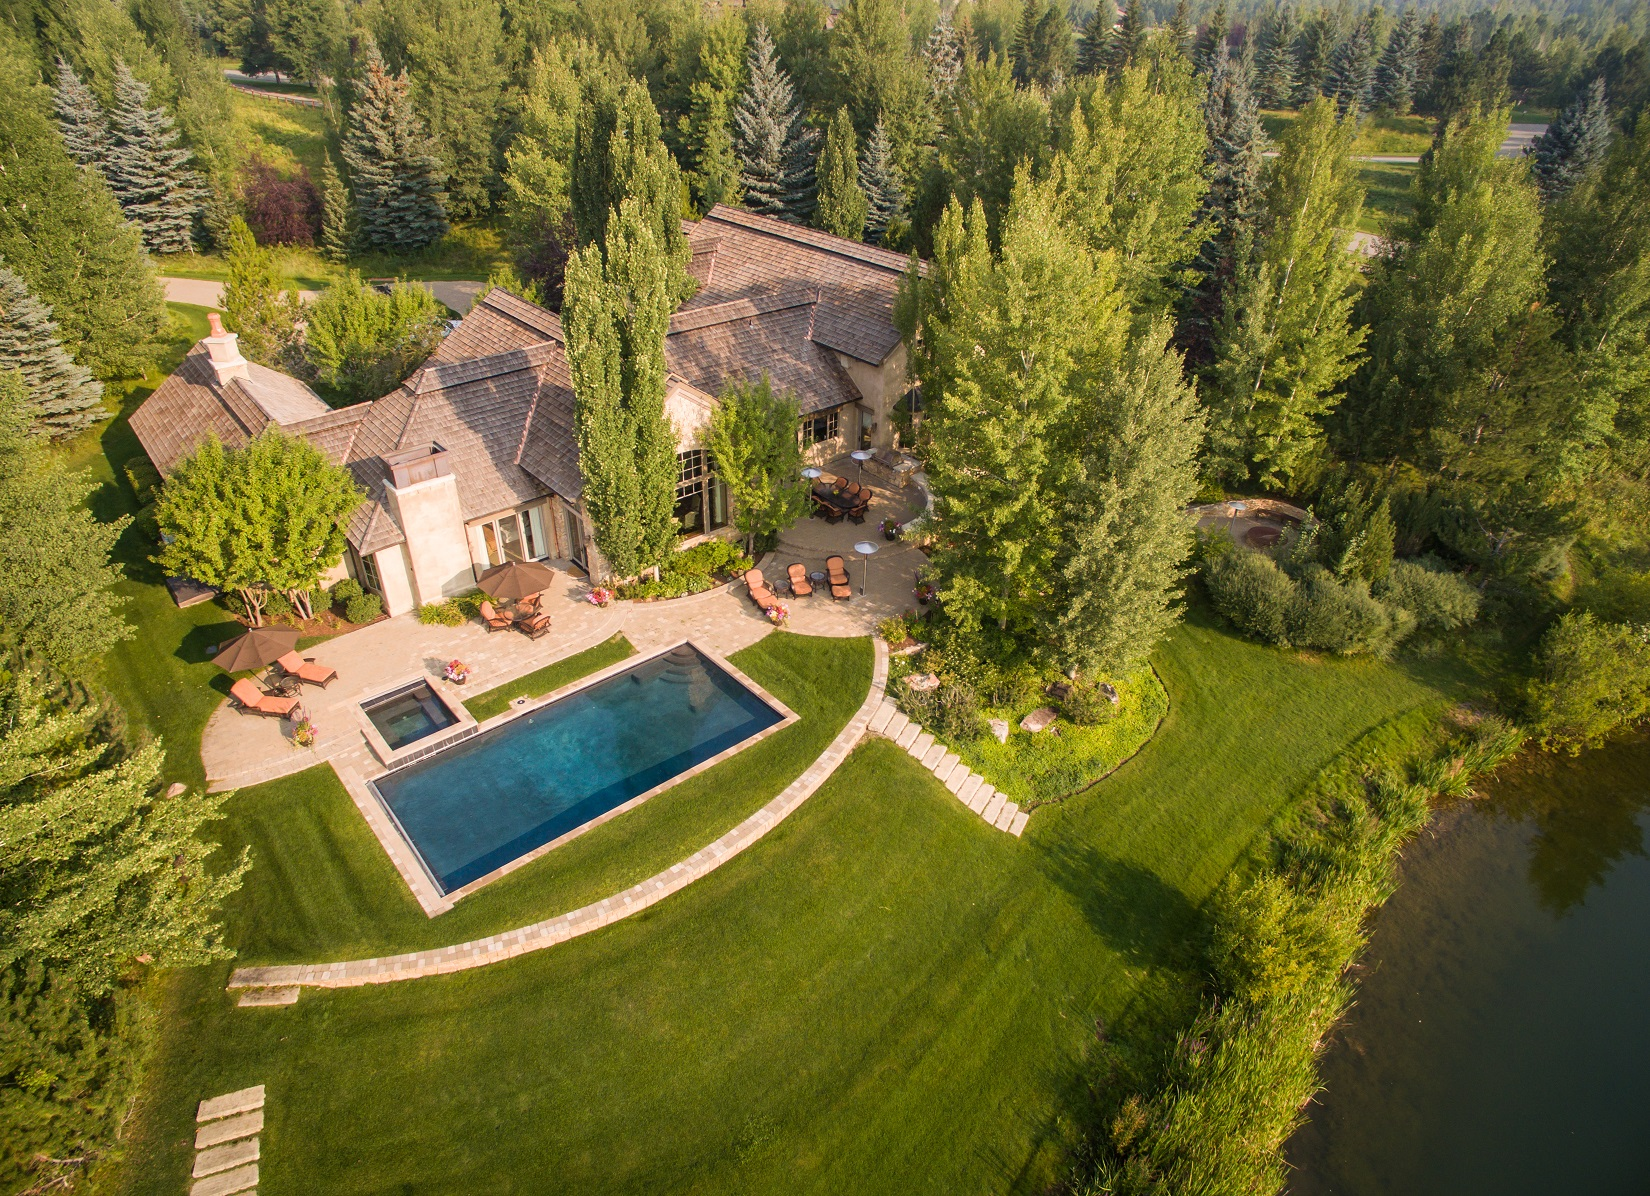 Casa Unifamiliar por un Venta en Golden Eagle 150 Eagle Lake Drive Hailey, Idaho 83333 Estados Unidos